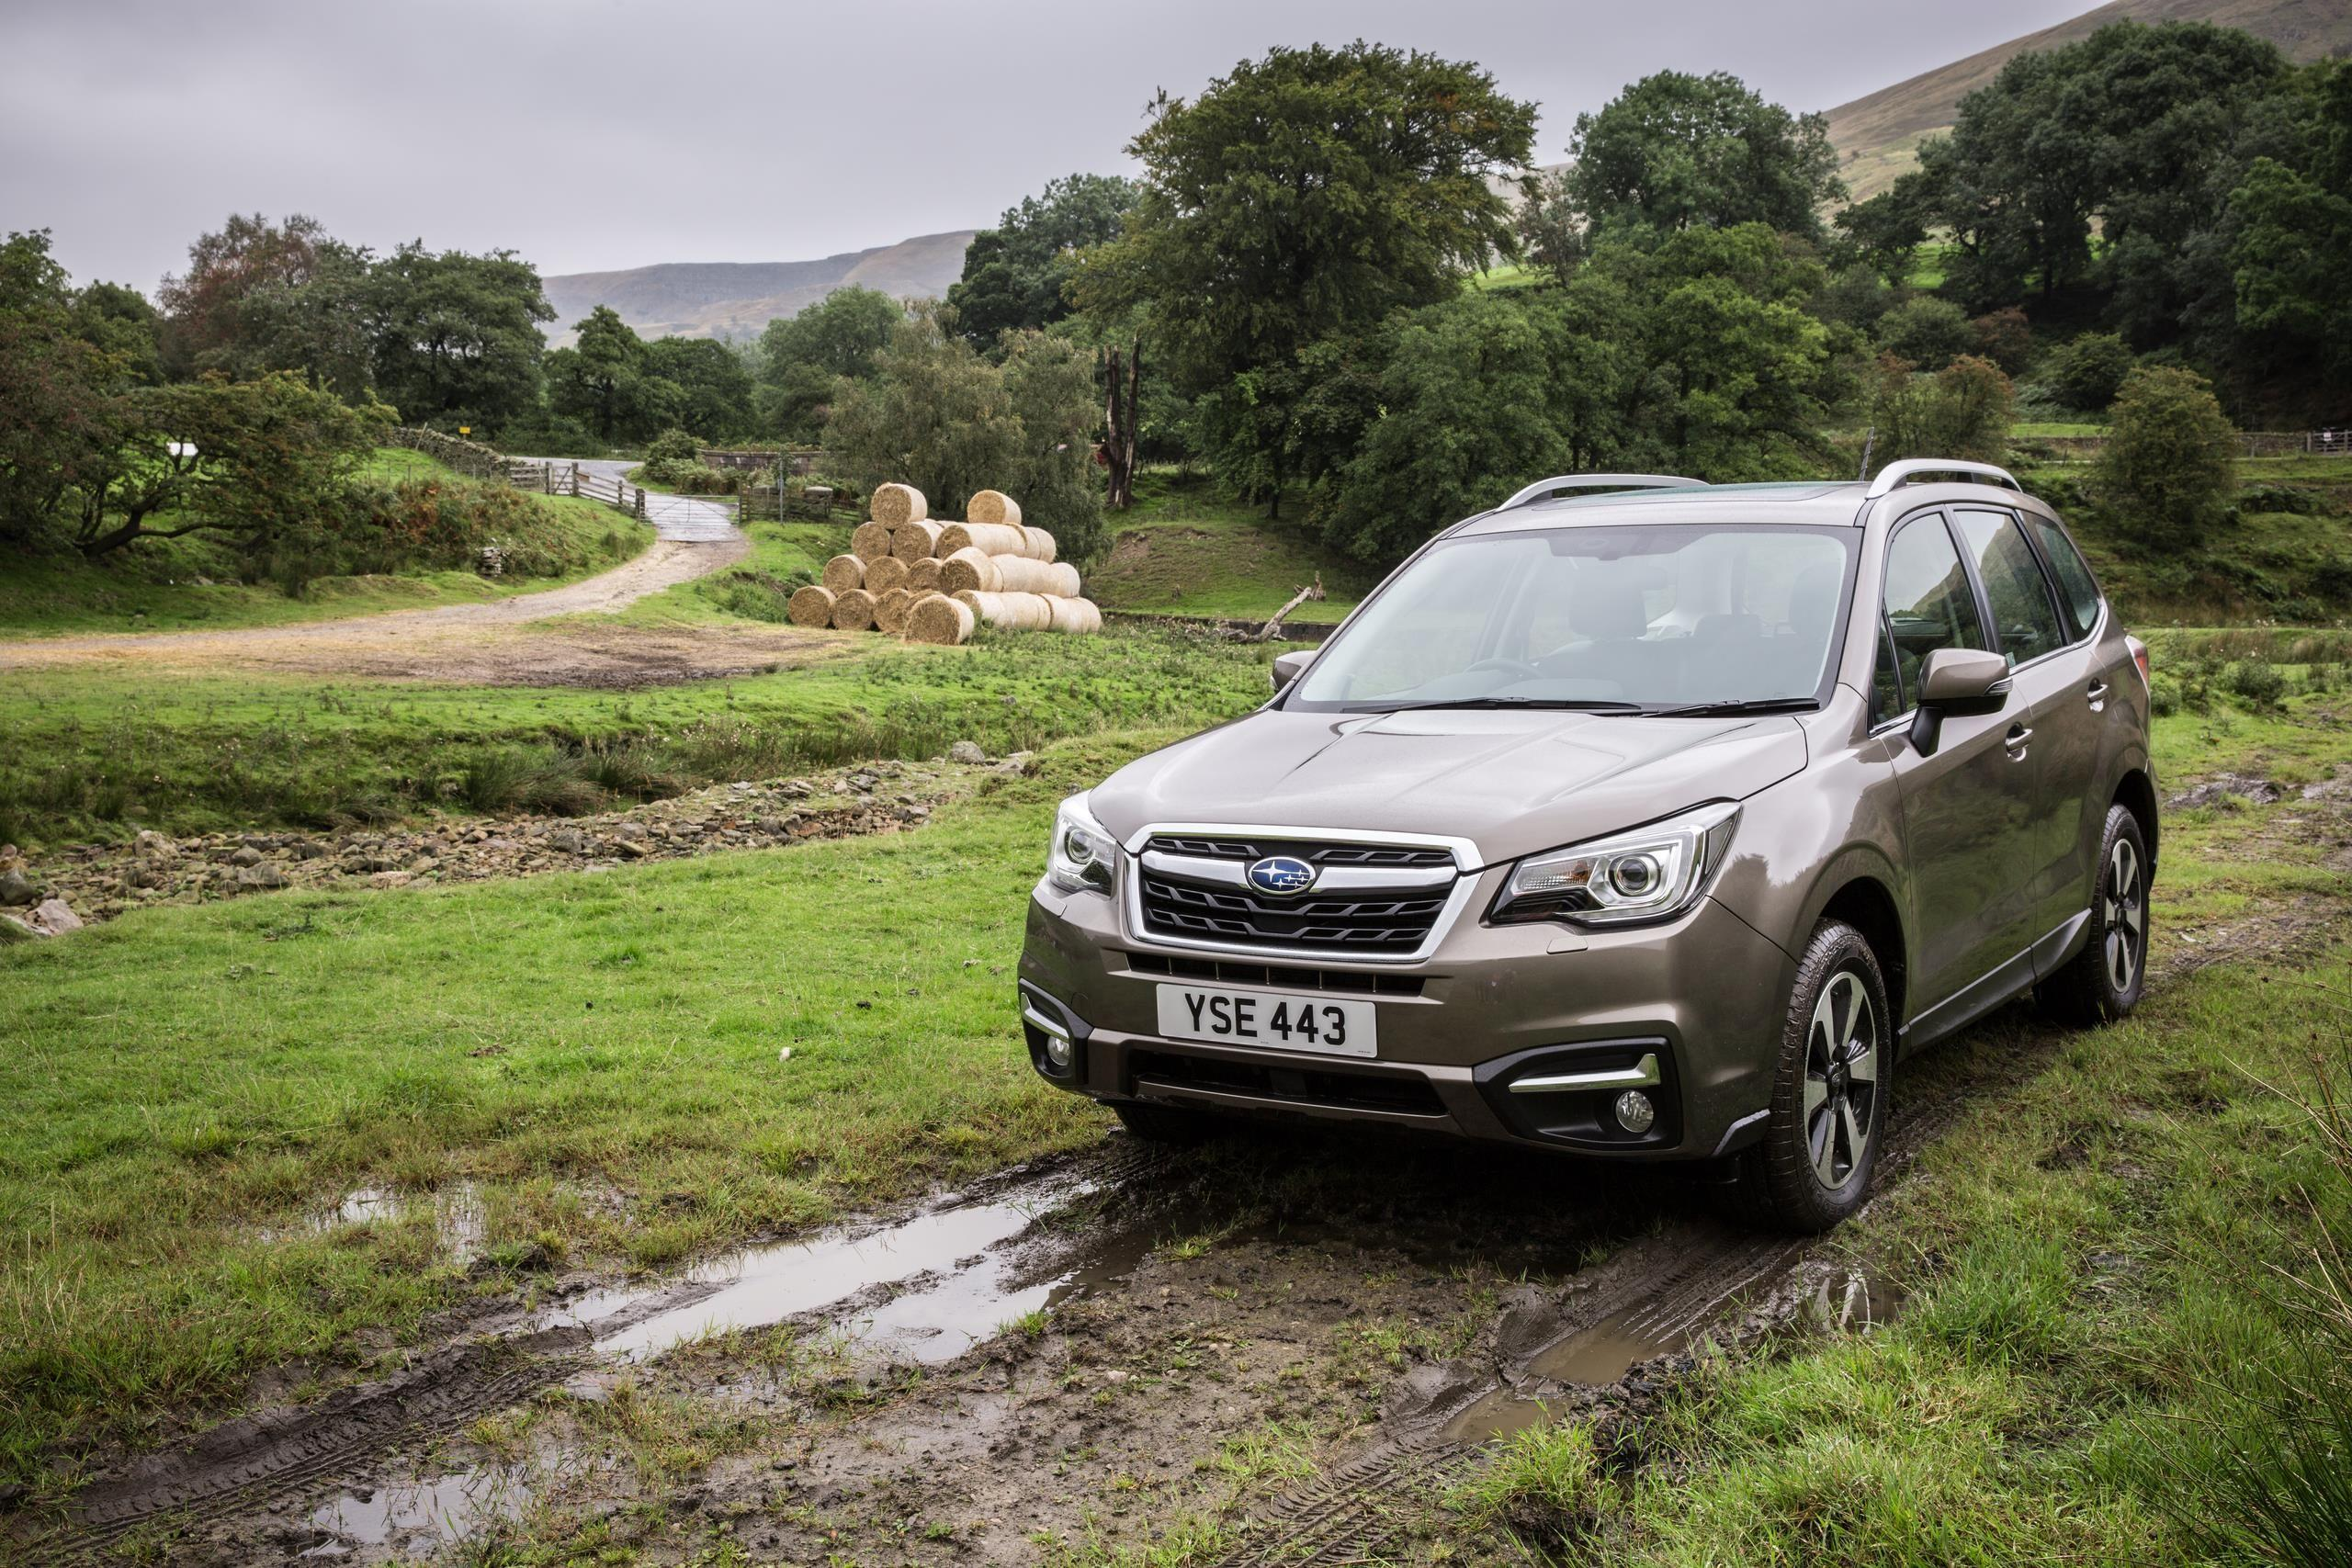 SUBARU RETURNS TO THE SHOOTING LINE AT THE GAME FAIR 2018